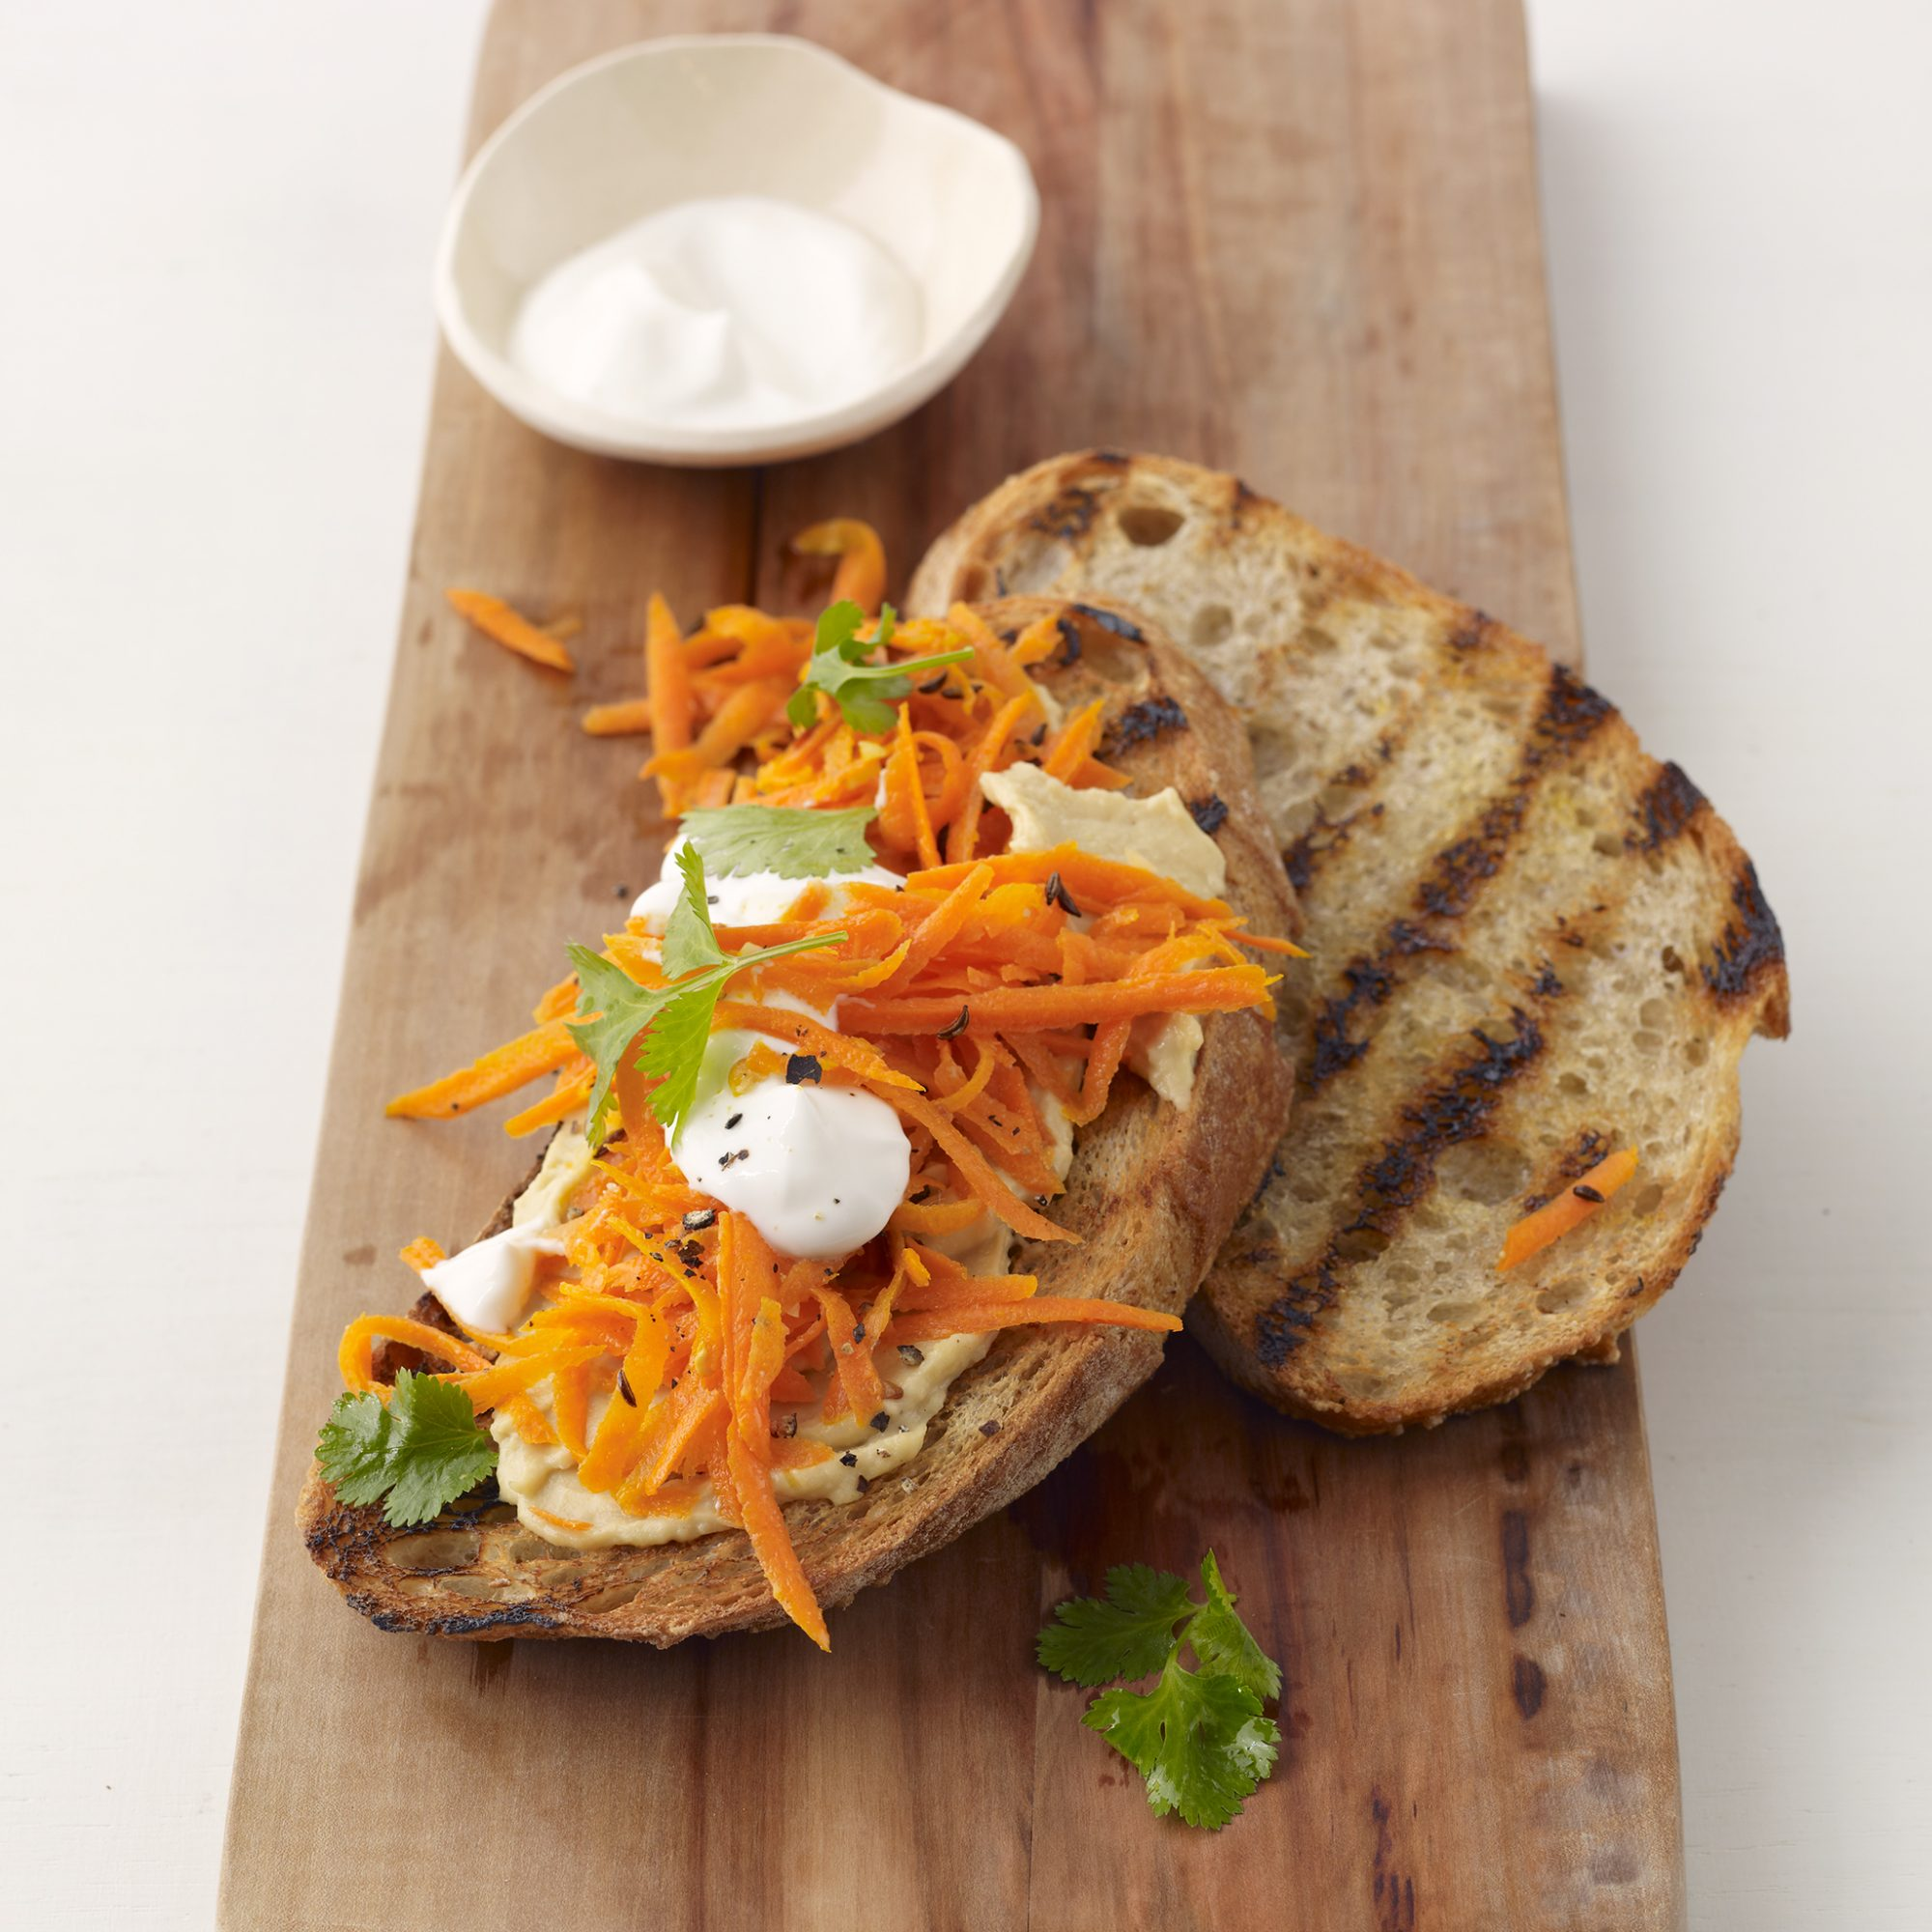 images-sys-201203-r-spicy-carrot-sandwiches.jpg